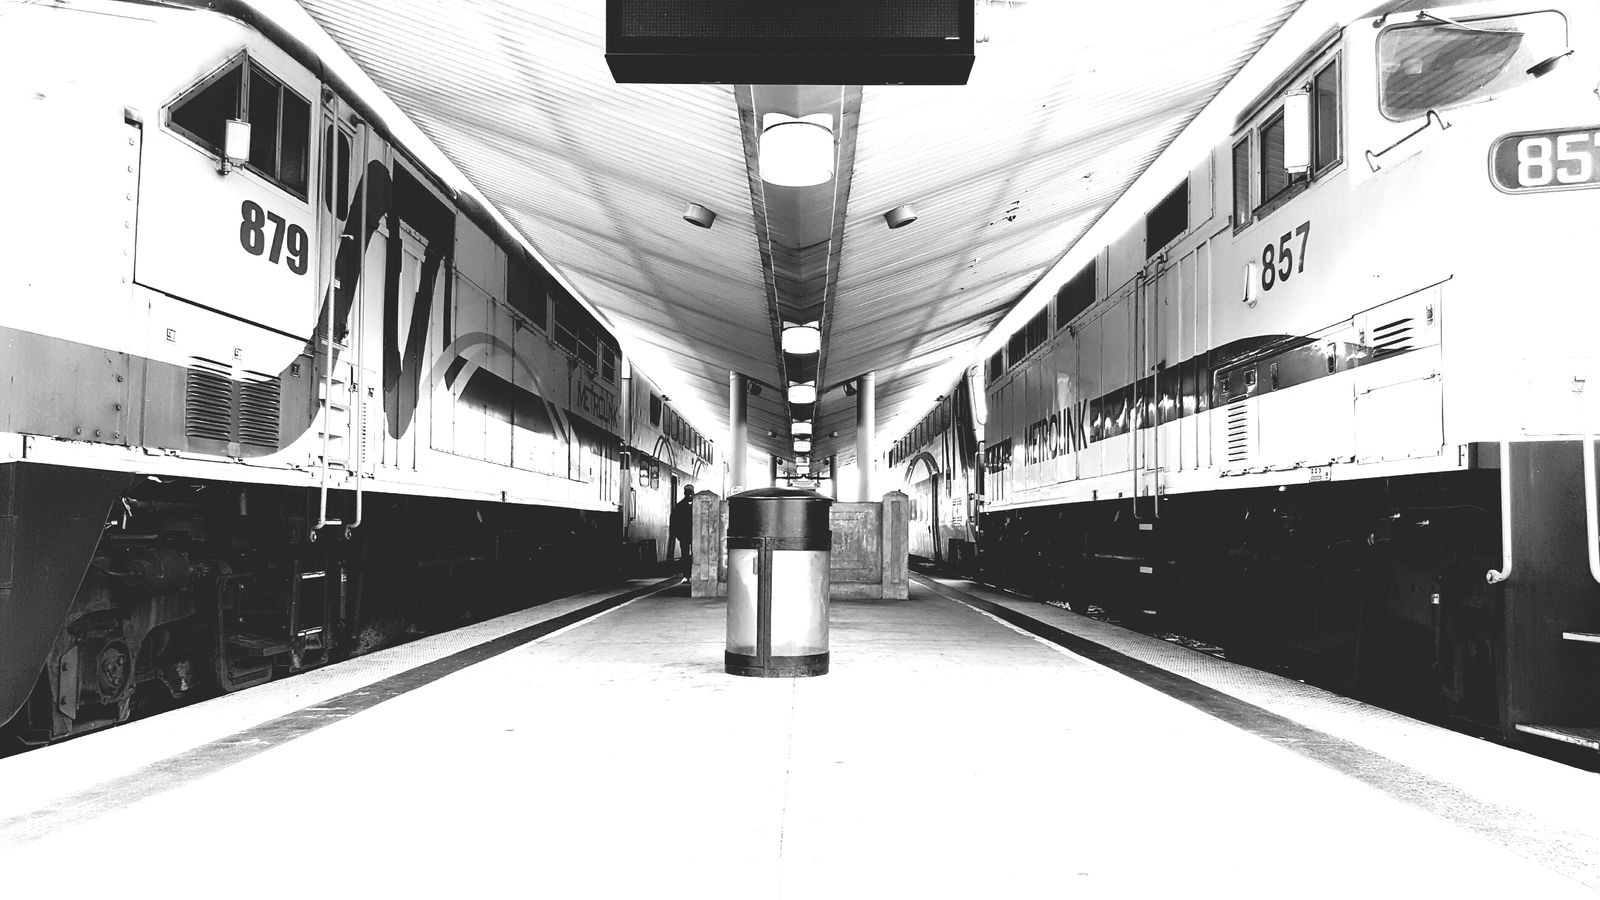 Transition Trains Train Station Trainphotography Trains_worldwide Los Angeles, California Los Angeles Union Station Downtown Blackandwhite Black & White Blackandwhite Photography Black And White Photography Blackandwhitephoto California My Commute